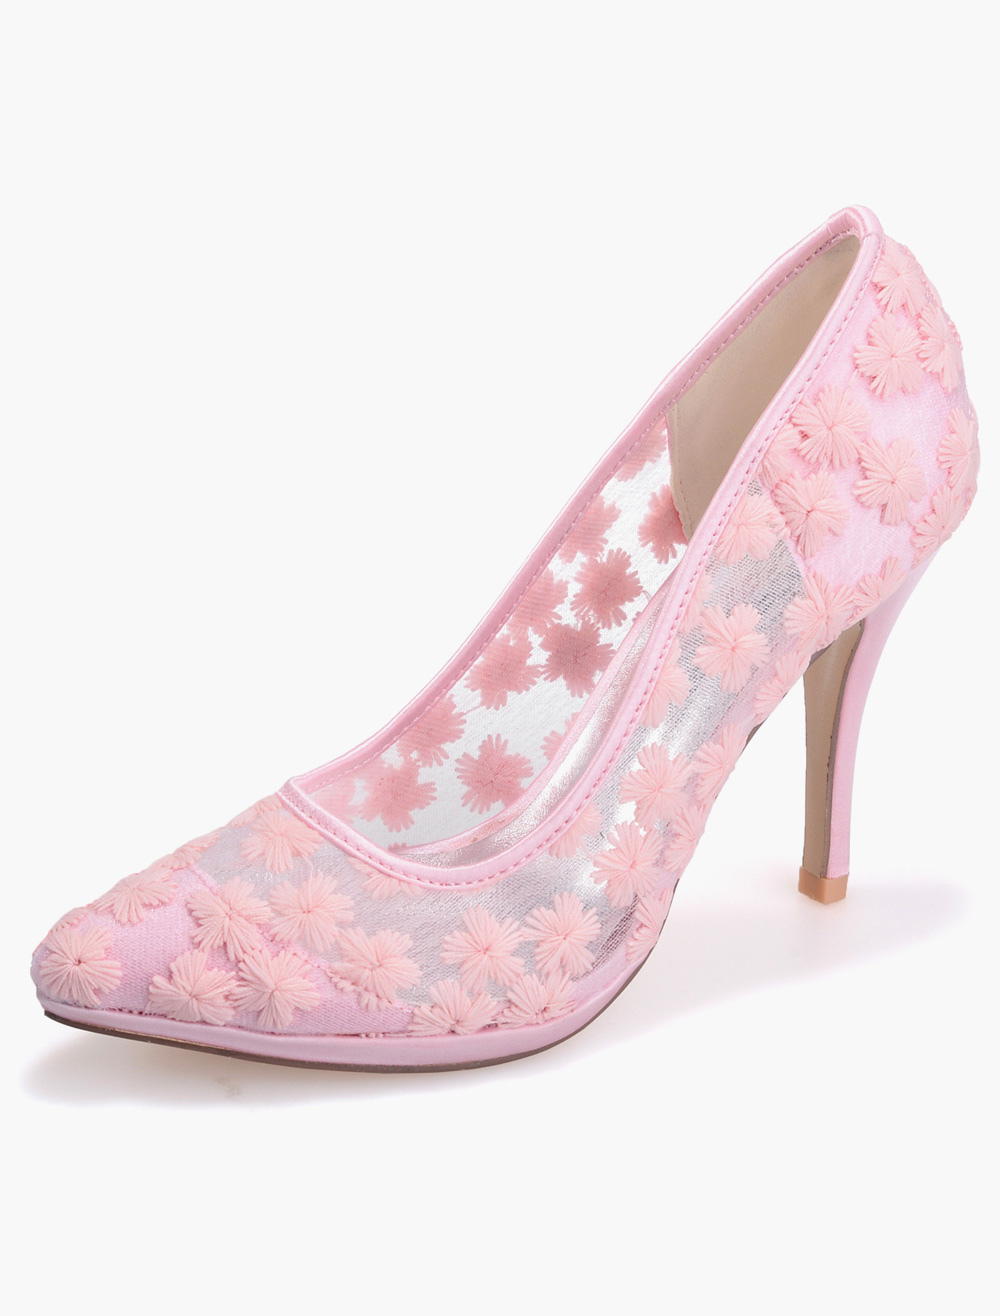 Amazing Lace Pointed Toe Bridal Pumps